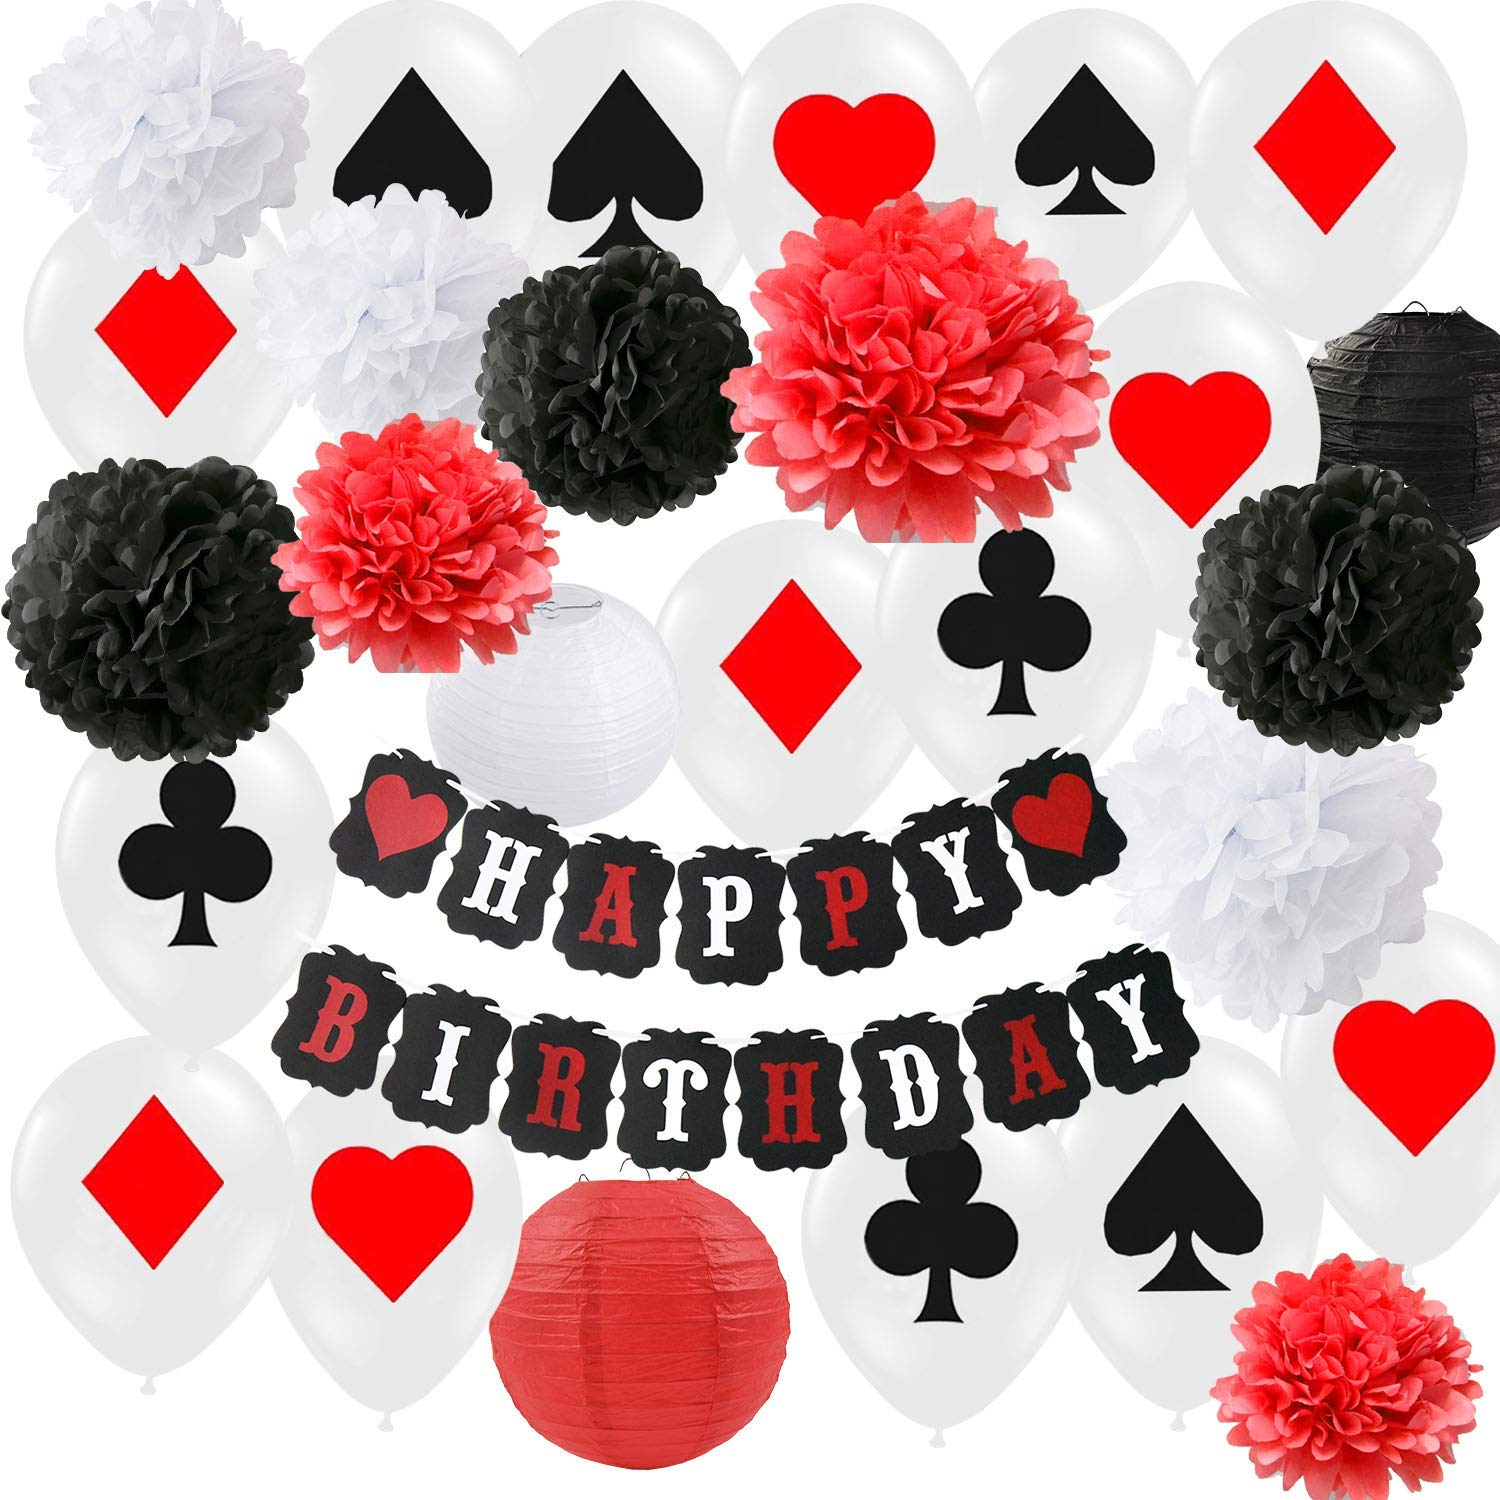 Casino Party Las Vegas Themed Parties Casino Night with Honeycomb pom poms balloons for Birthday Poker Party Decorations